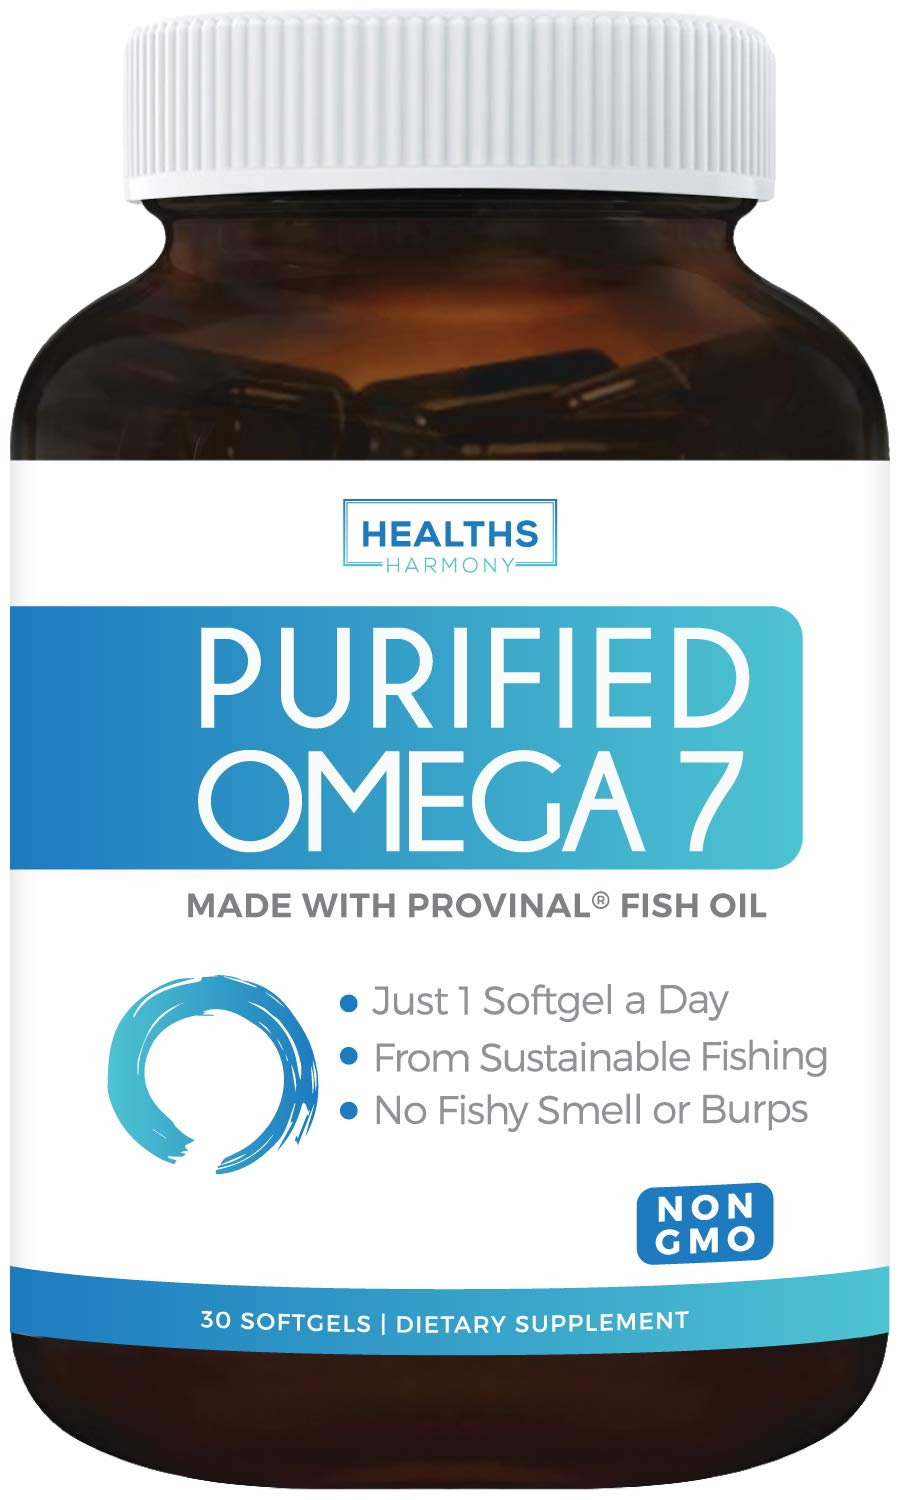 Purified Omega 7 Oil - Provinal Omega 7 (Non-GMO) All The Palmitoleic Acid EE Your Body Needs - Made from Peruvian Anchovy Fish - High Potency One Month Supply - 30 Softgels by Healths Harmony